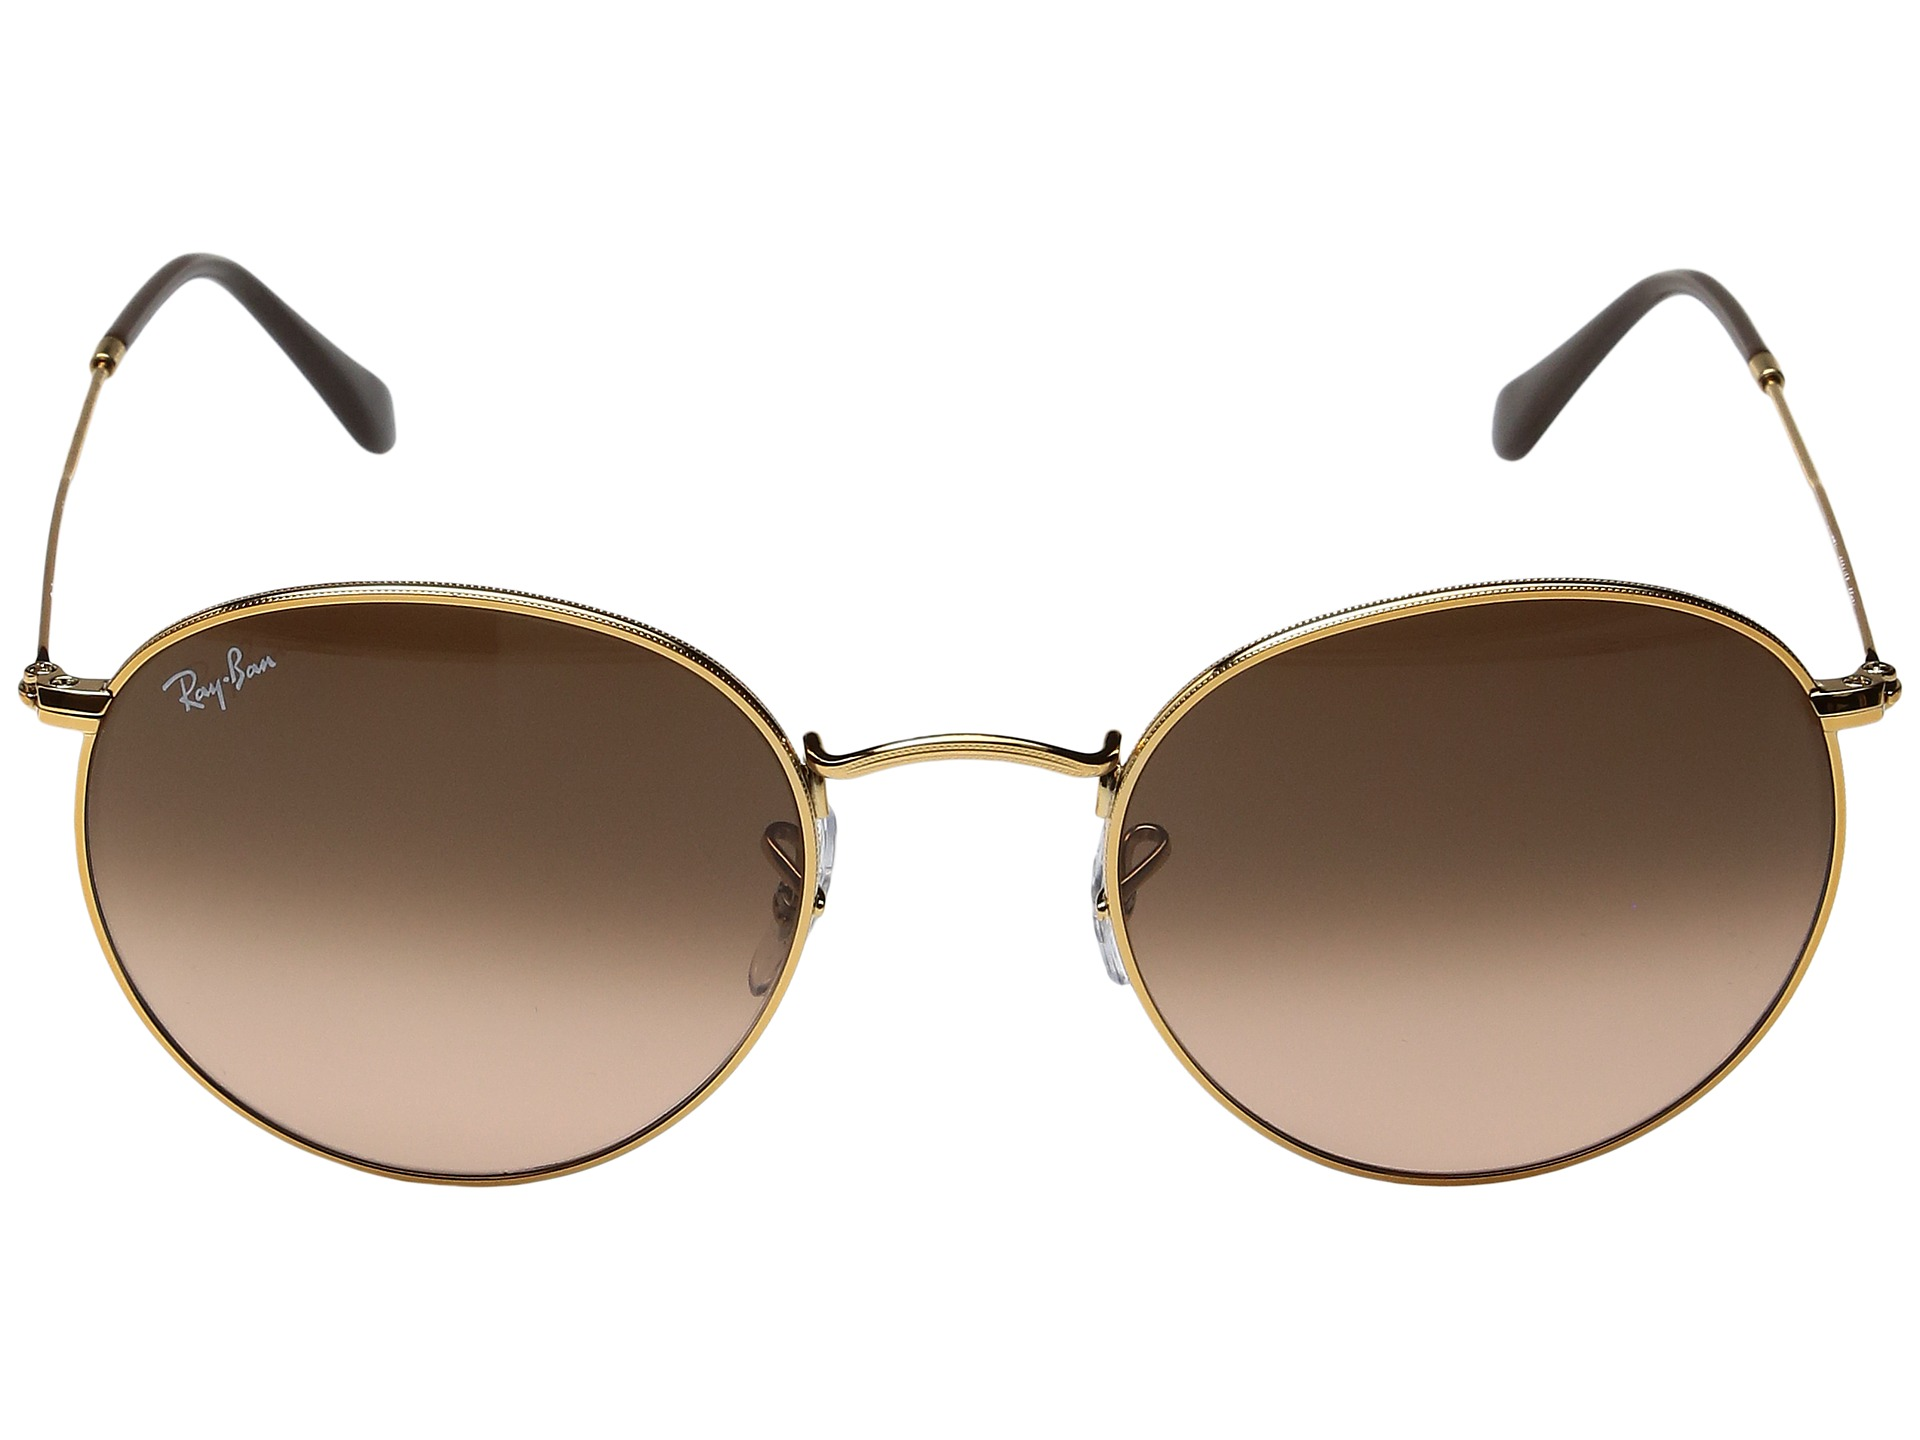 43d5389629a Where To Buy Ray Ban Sunglasses « Heritage Malta